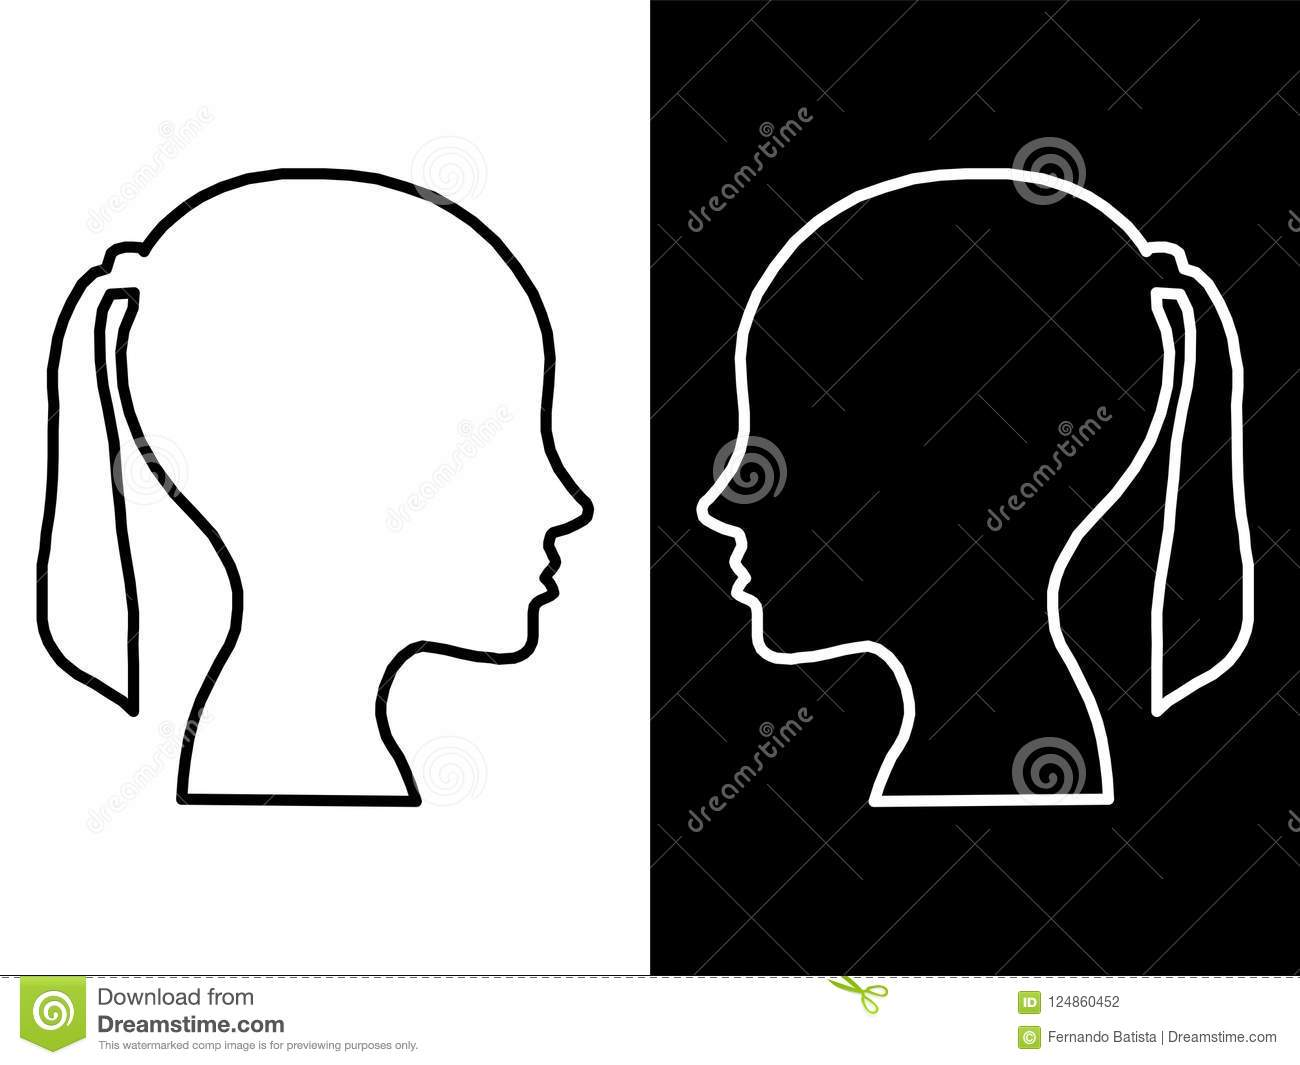 Heads of two people, woman and man, abstract brain for concept idea